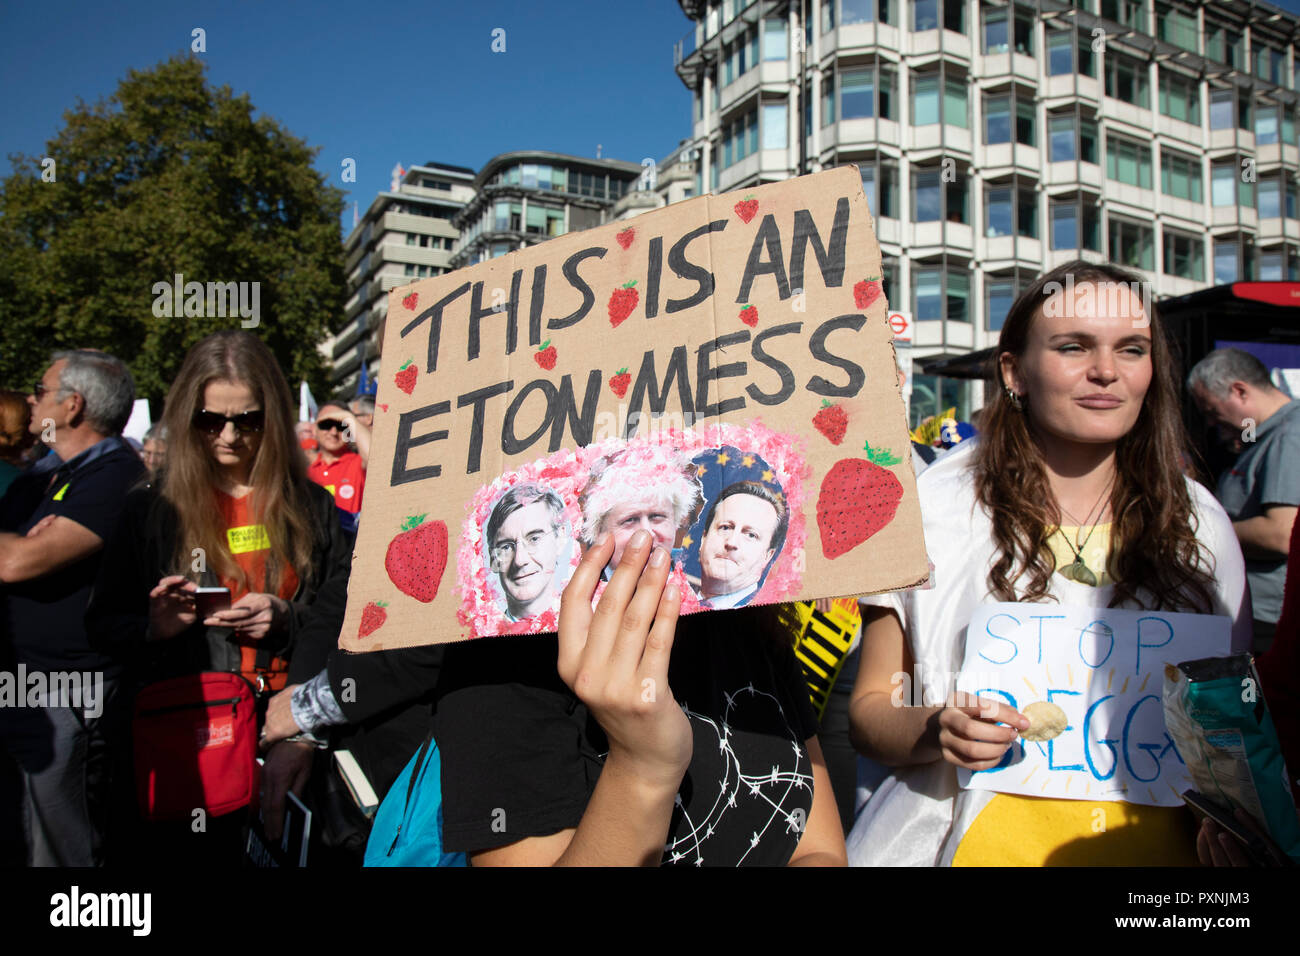 The People's Vote March For The Future on 20th October 2018 in London, United Kingdom. More than an estimated 500,000 people marched on Parliament to demand their democratic voice to be heard in a landmark demonstration billed as the most important protest of a generation. As the date of the UK's Brexit from the European Union, the protesters gathered in their tens of thousands to make political leaders take notice and to give the British public a vote on the final Brexit deal. Stock Photo